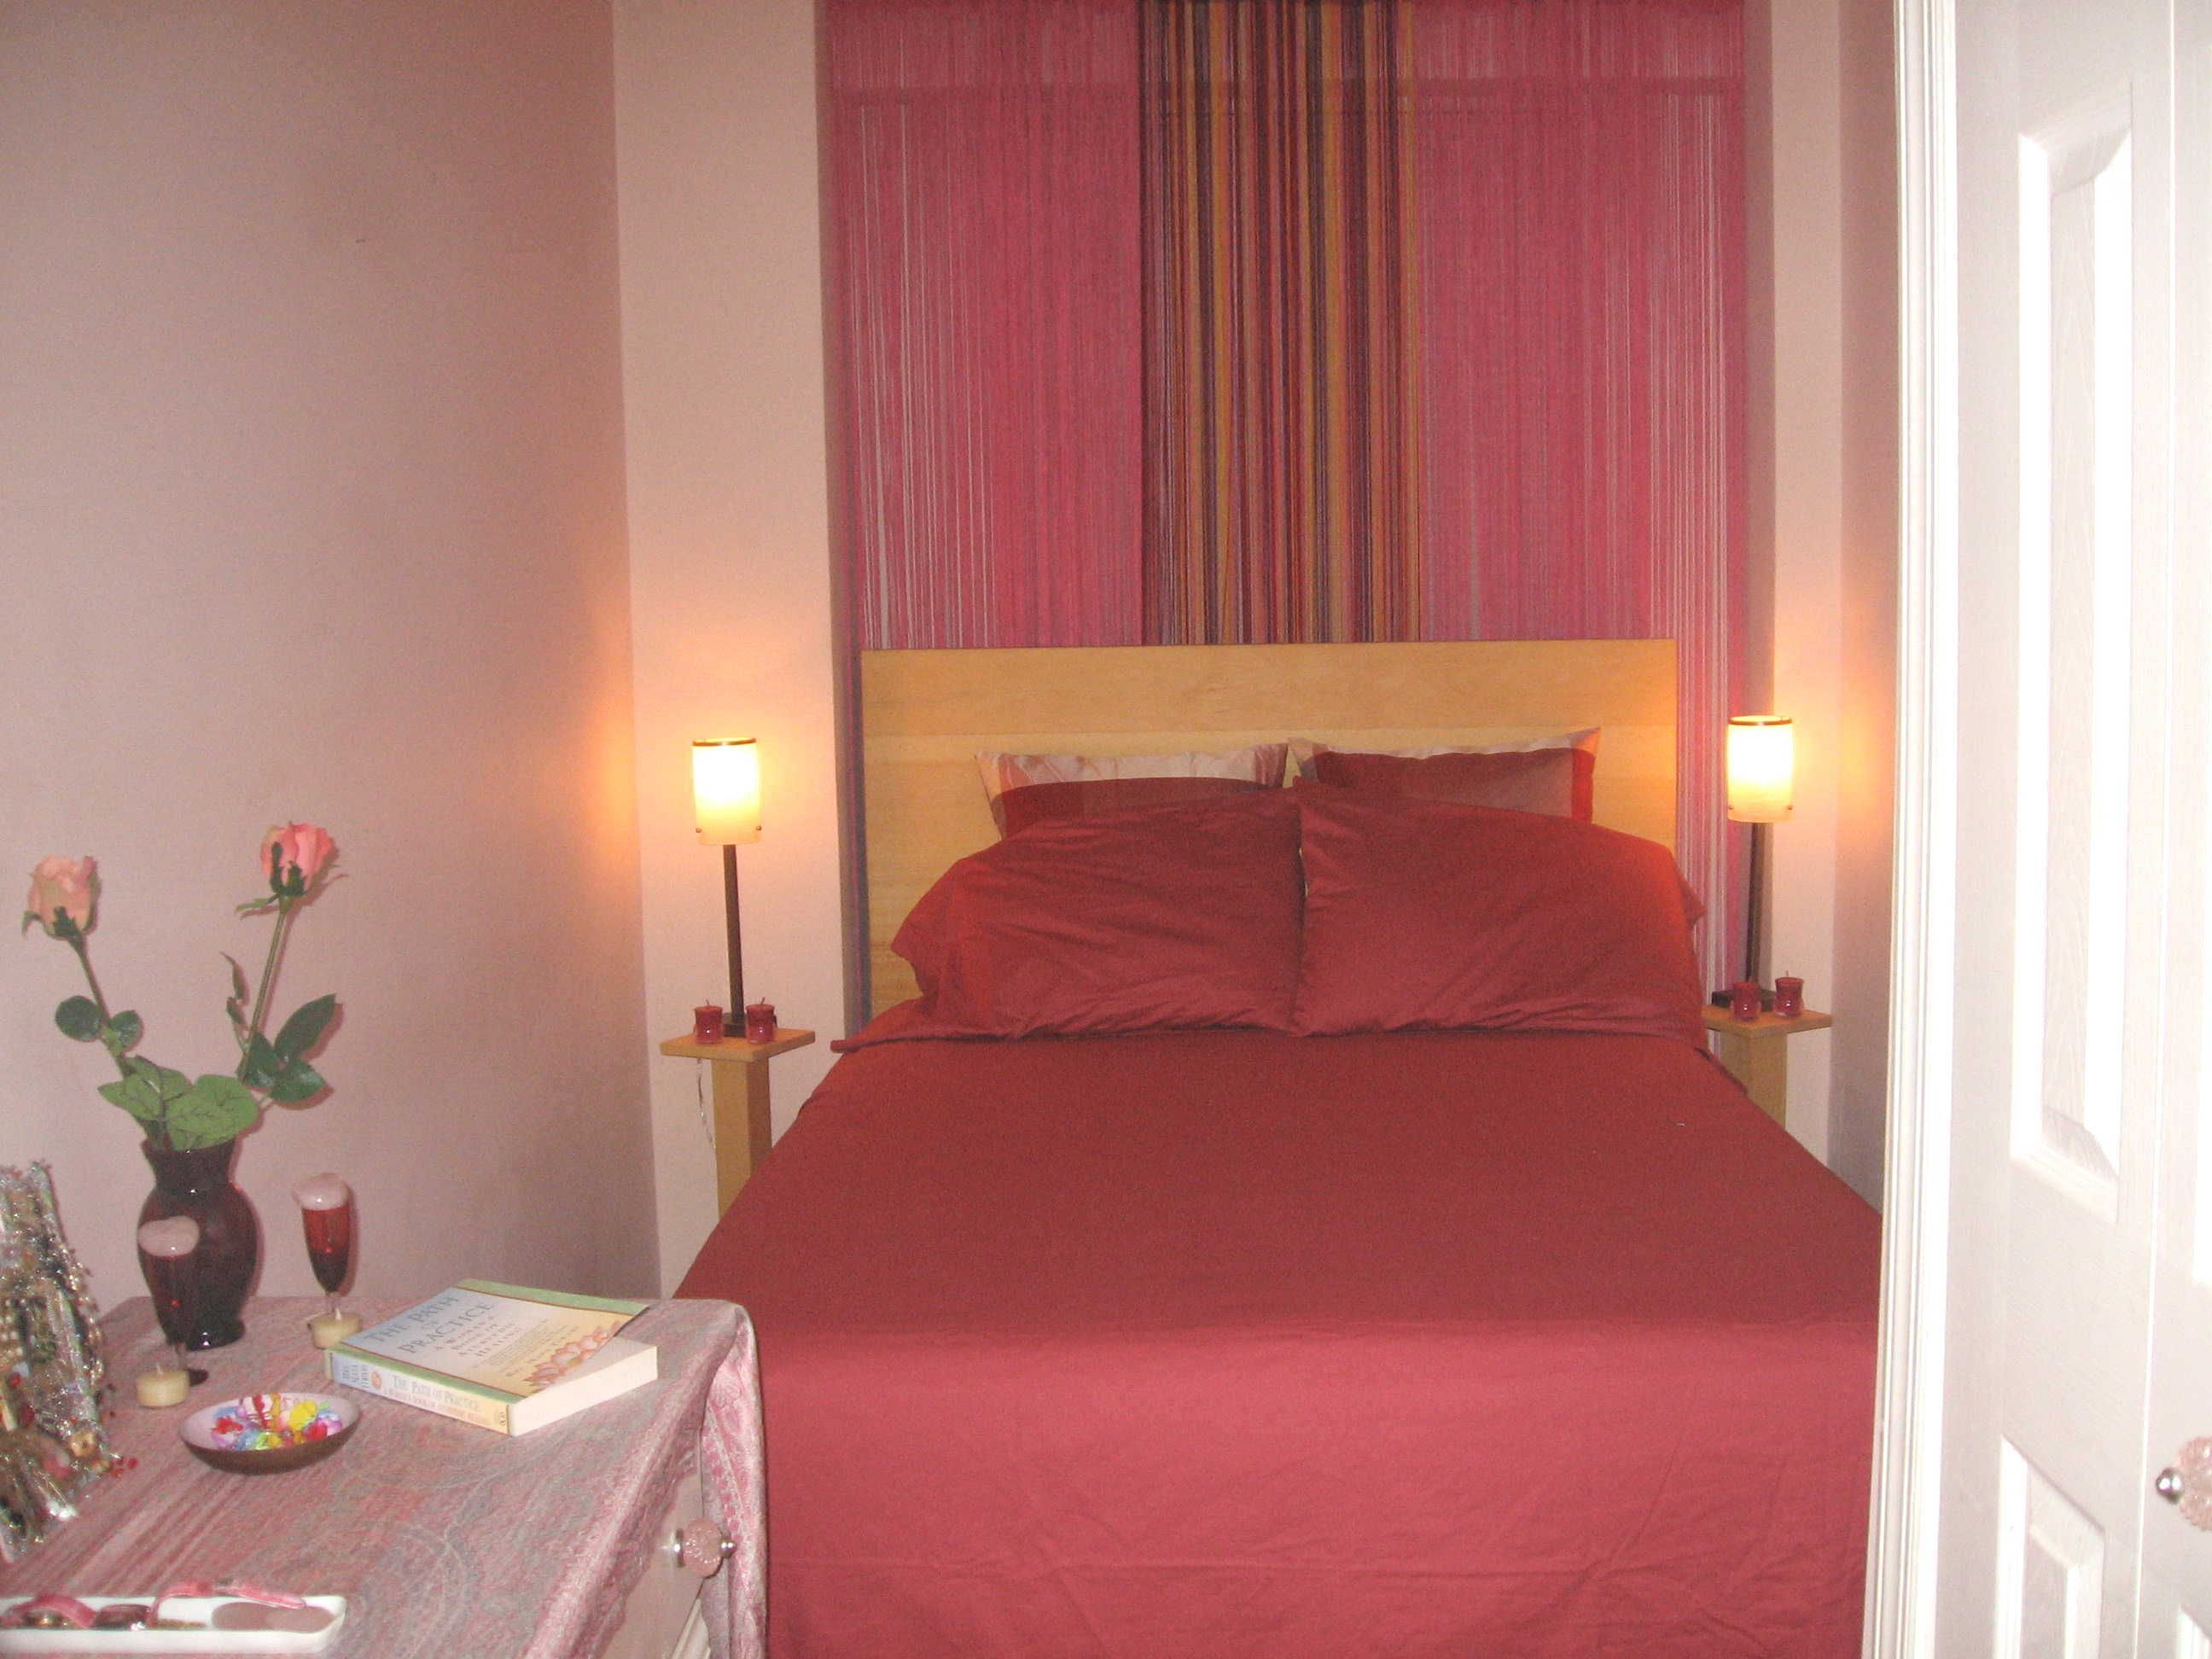 Romantic Couple Bedroom Ideas With Red Bed And Curtain Small Light And Vase Apartement Archite Small Bedroom Ideas For Couples Bedroom Layouts Simple Bedroom